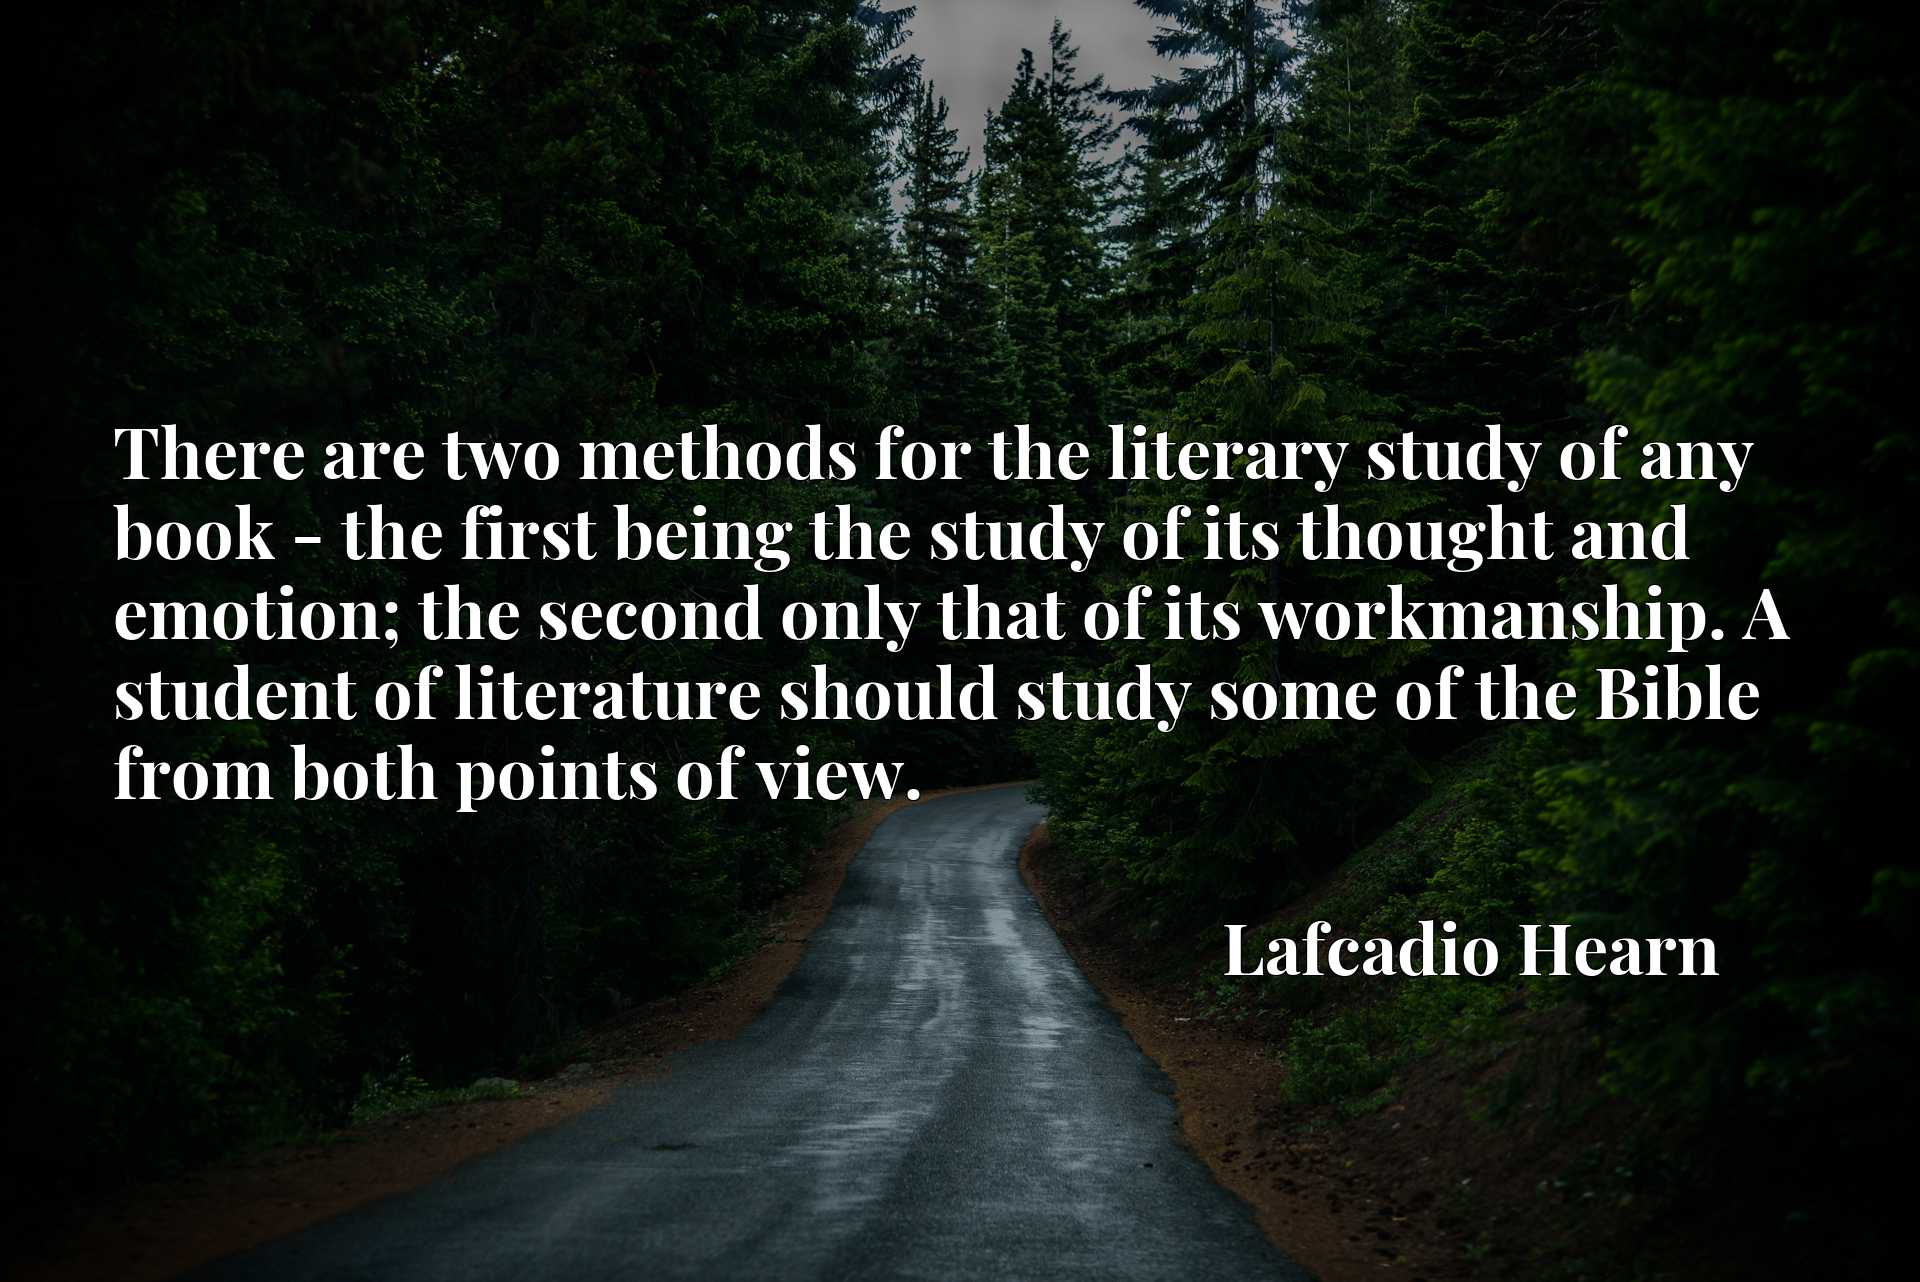 There are two methods for the literary study of any book - the first being the study of its thought and emotion; the second only that of its workmanship. A student of literature should study some of the Bible from both points of view.